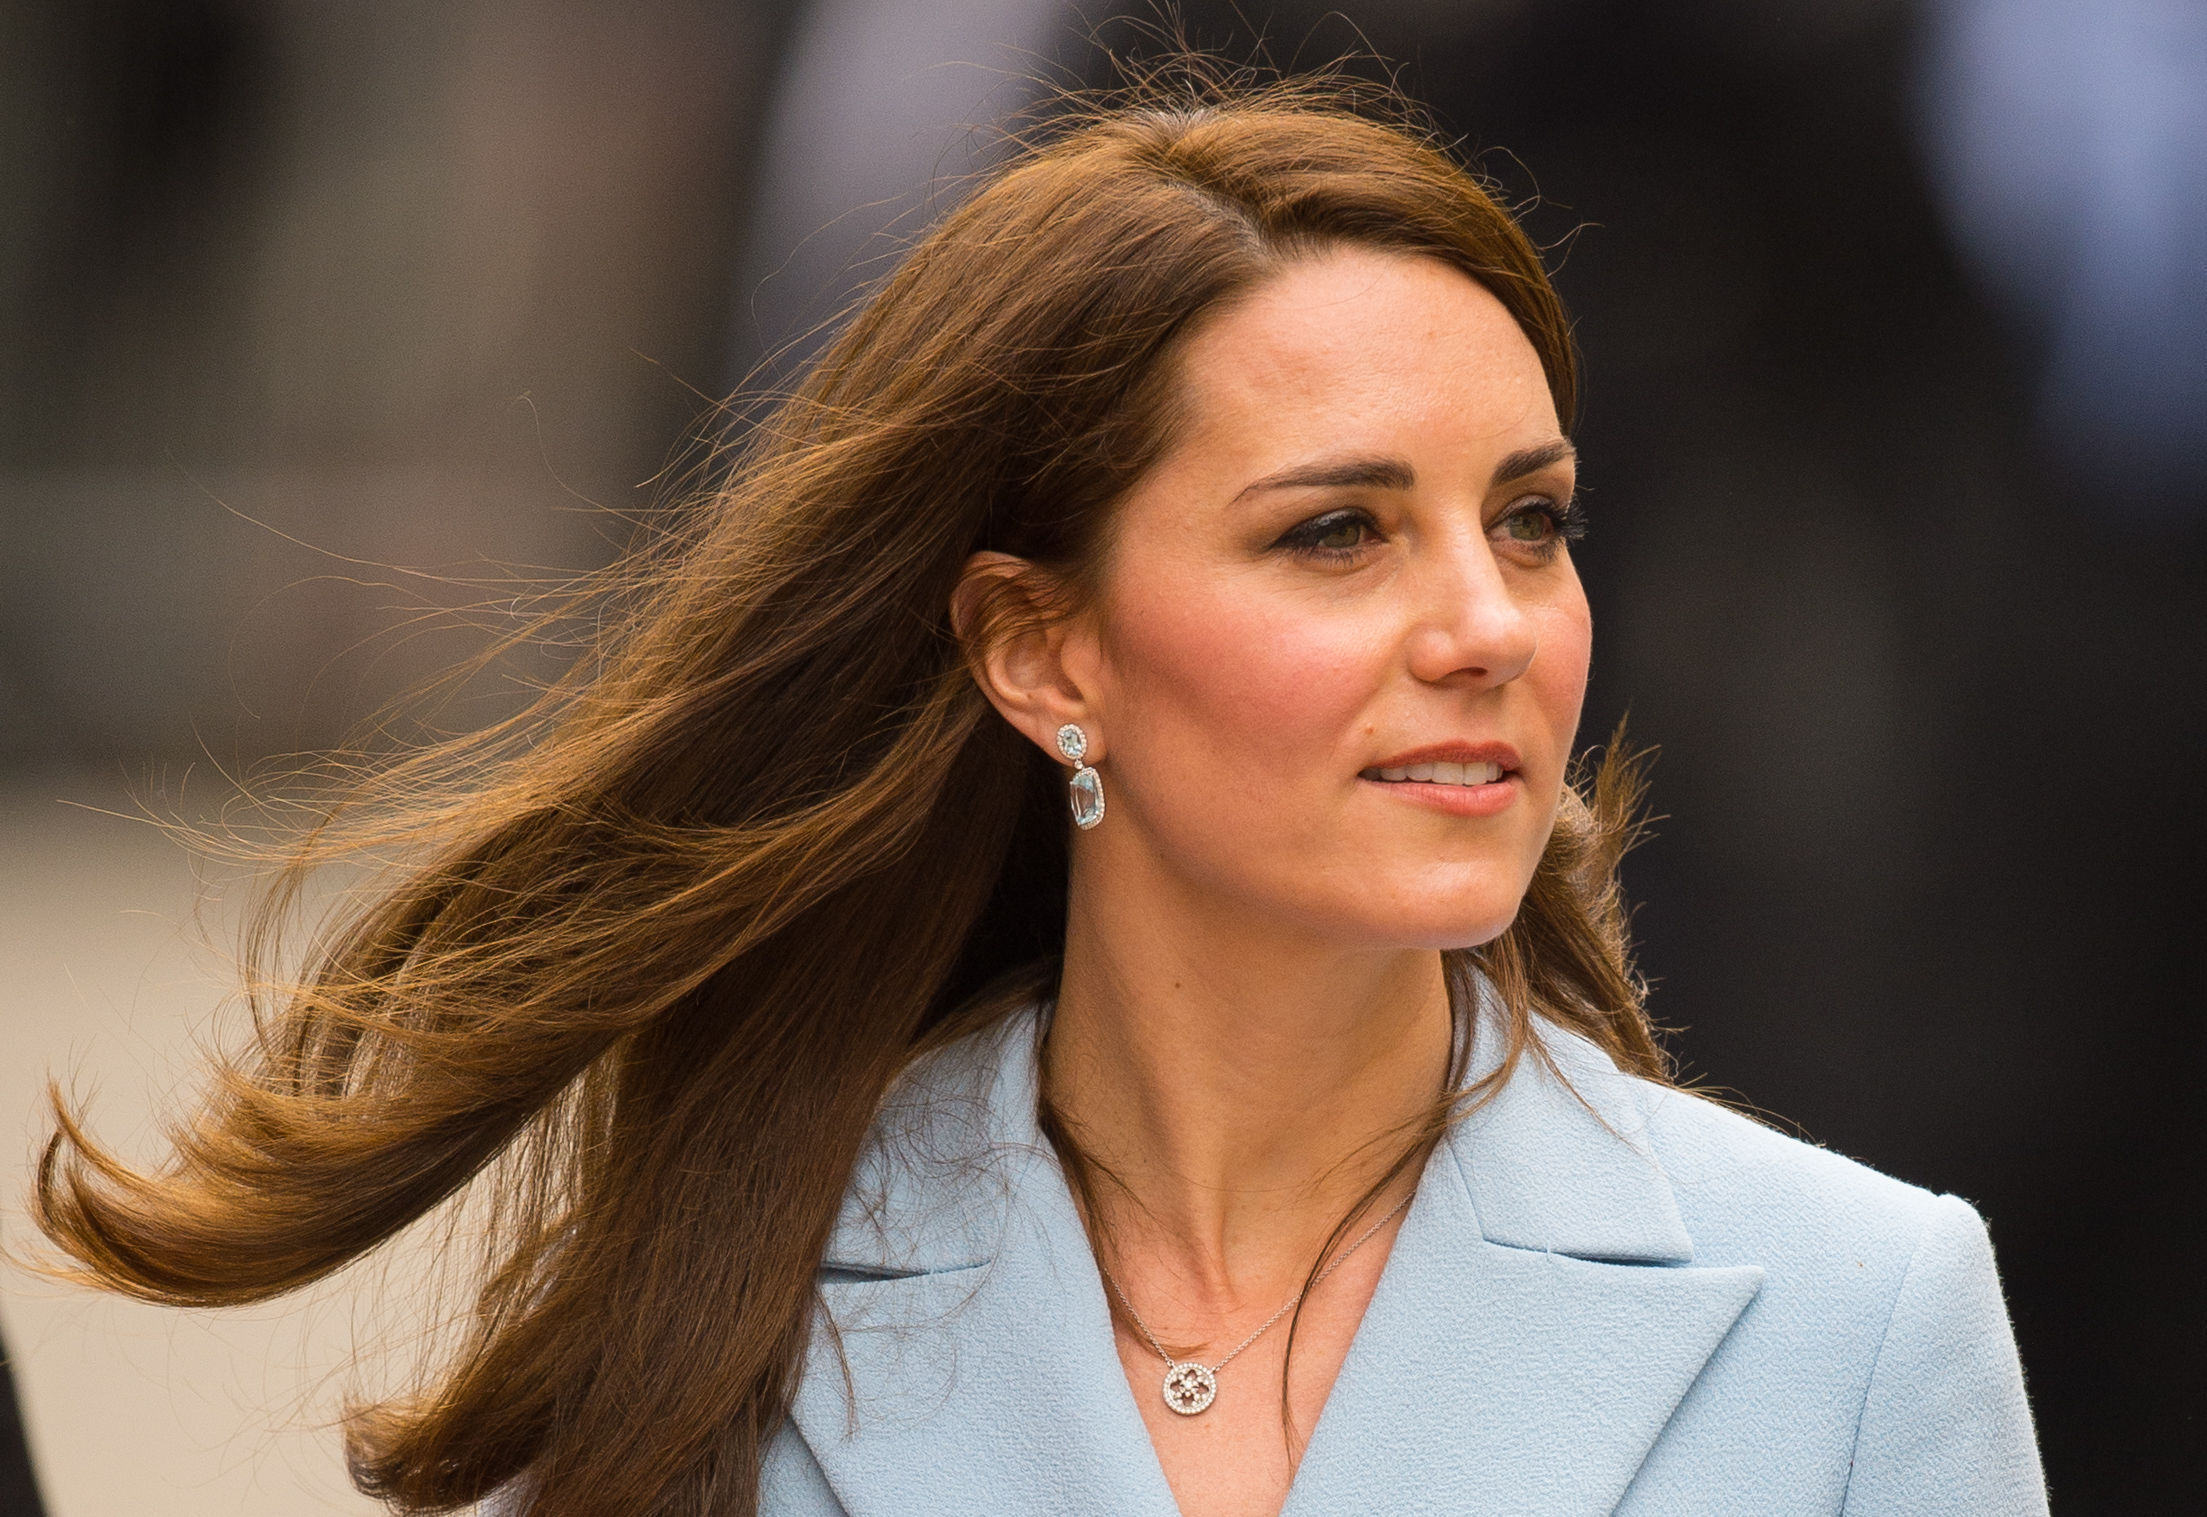 Kate Middleton looking flawless